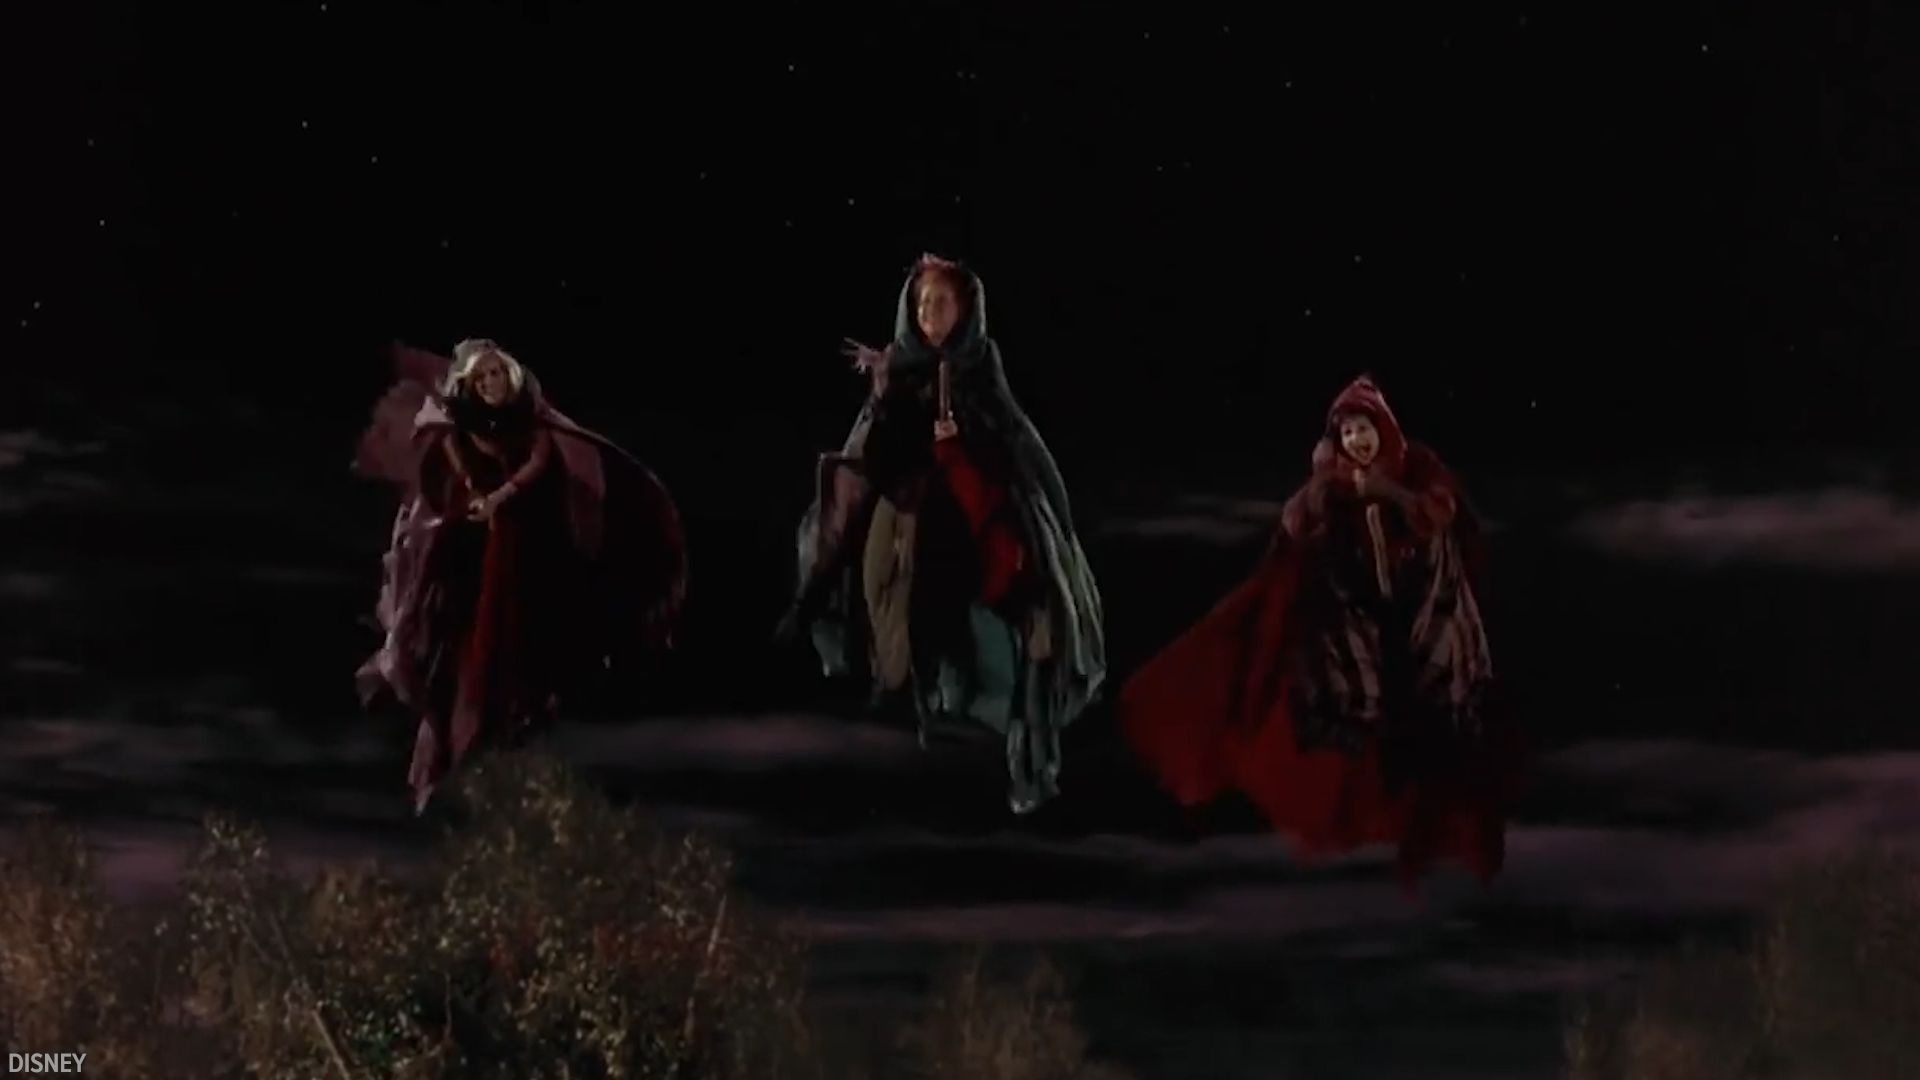 A Hocus Pocus remake is in the work